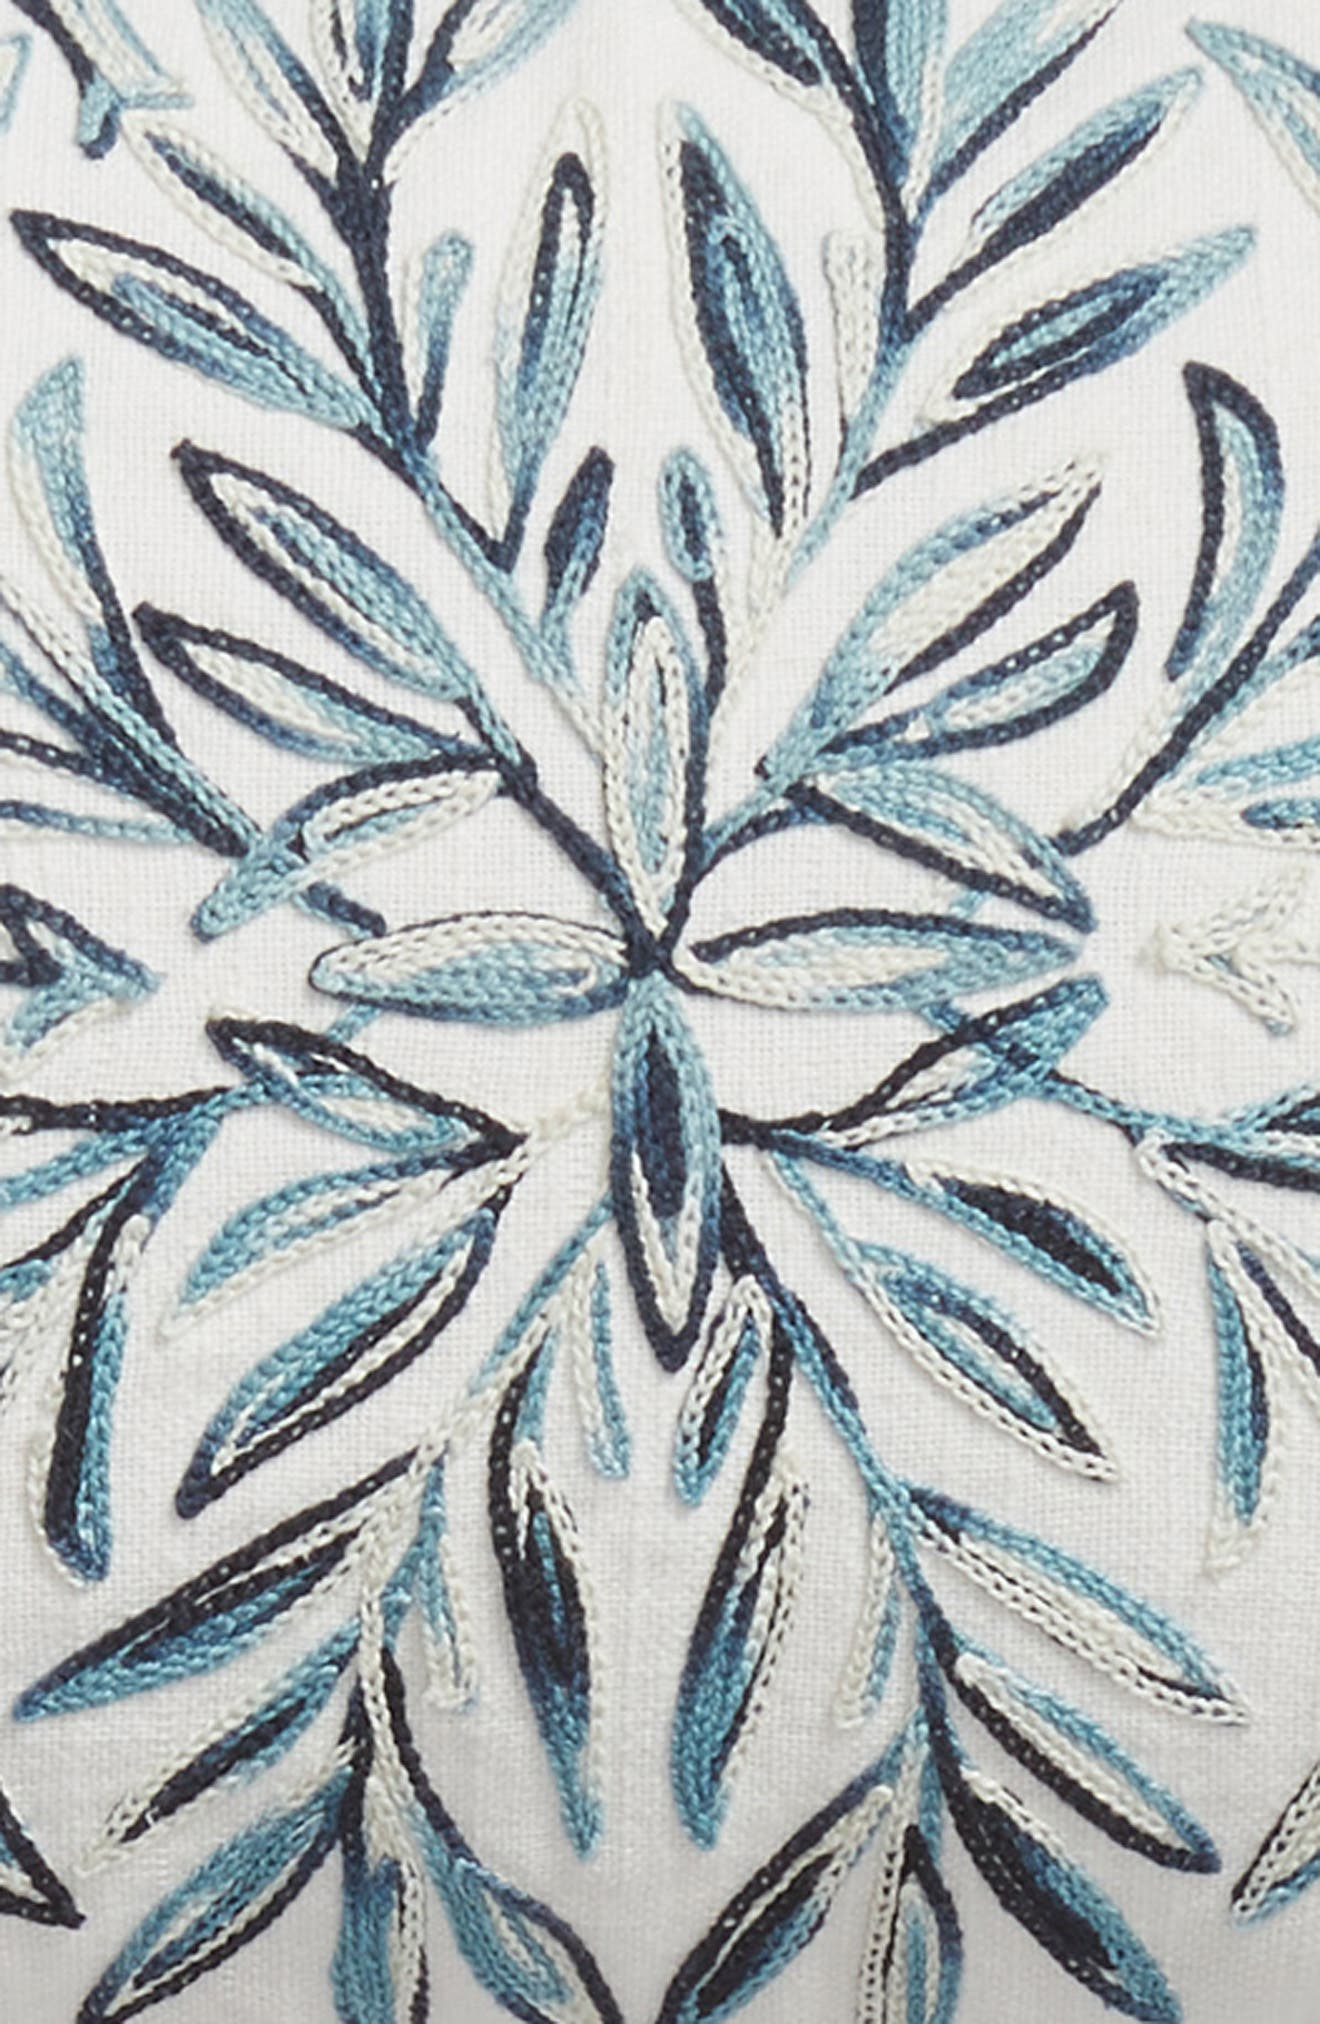 Space Dyed Embroidered Accent Pillow,                             Alternate thumbnail 3, color,                             TEAL HYDRO MULTI